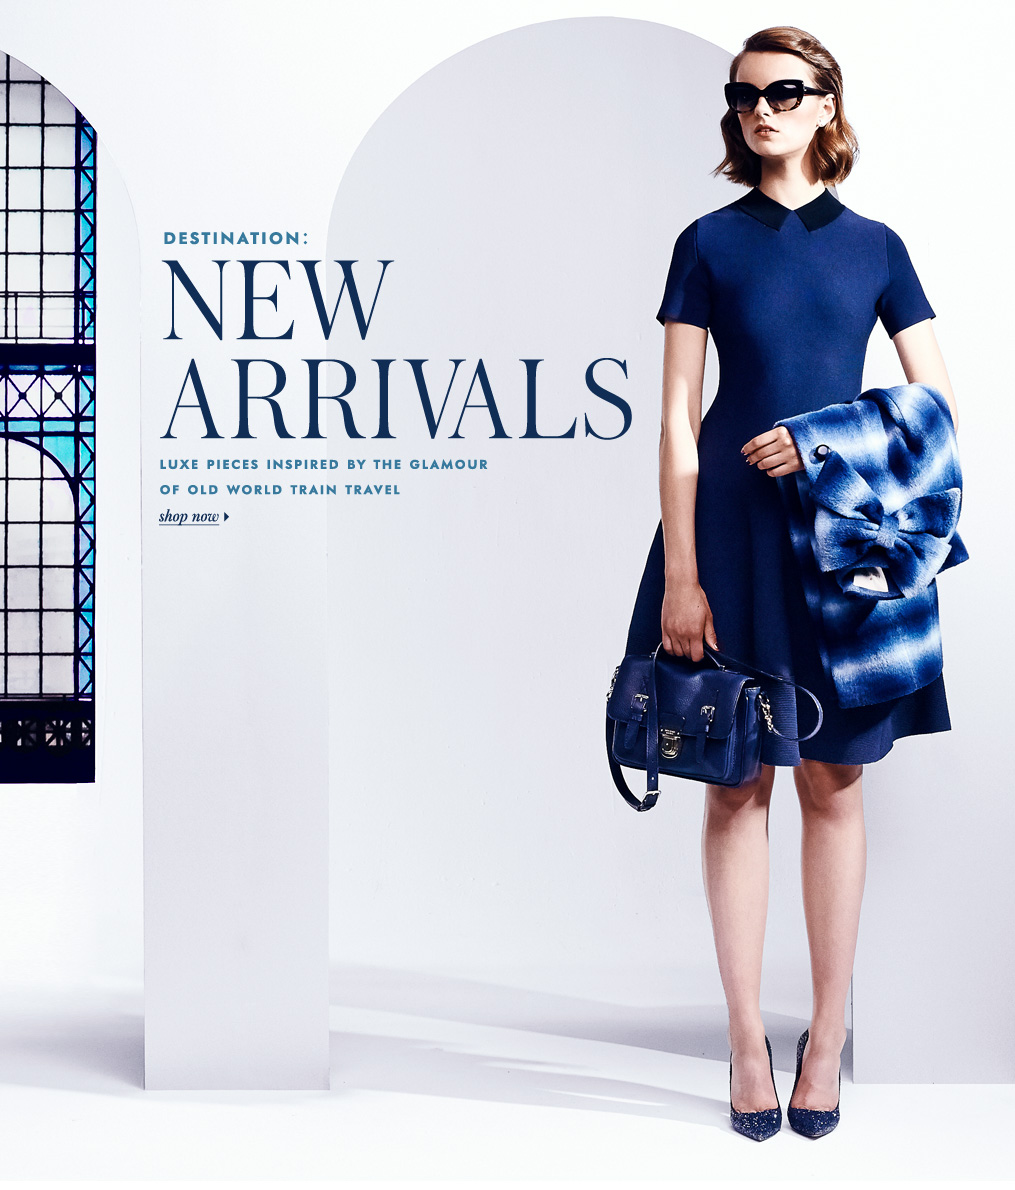 kate spade new york - designer handbags, women's clothing, jewelry, and more!